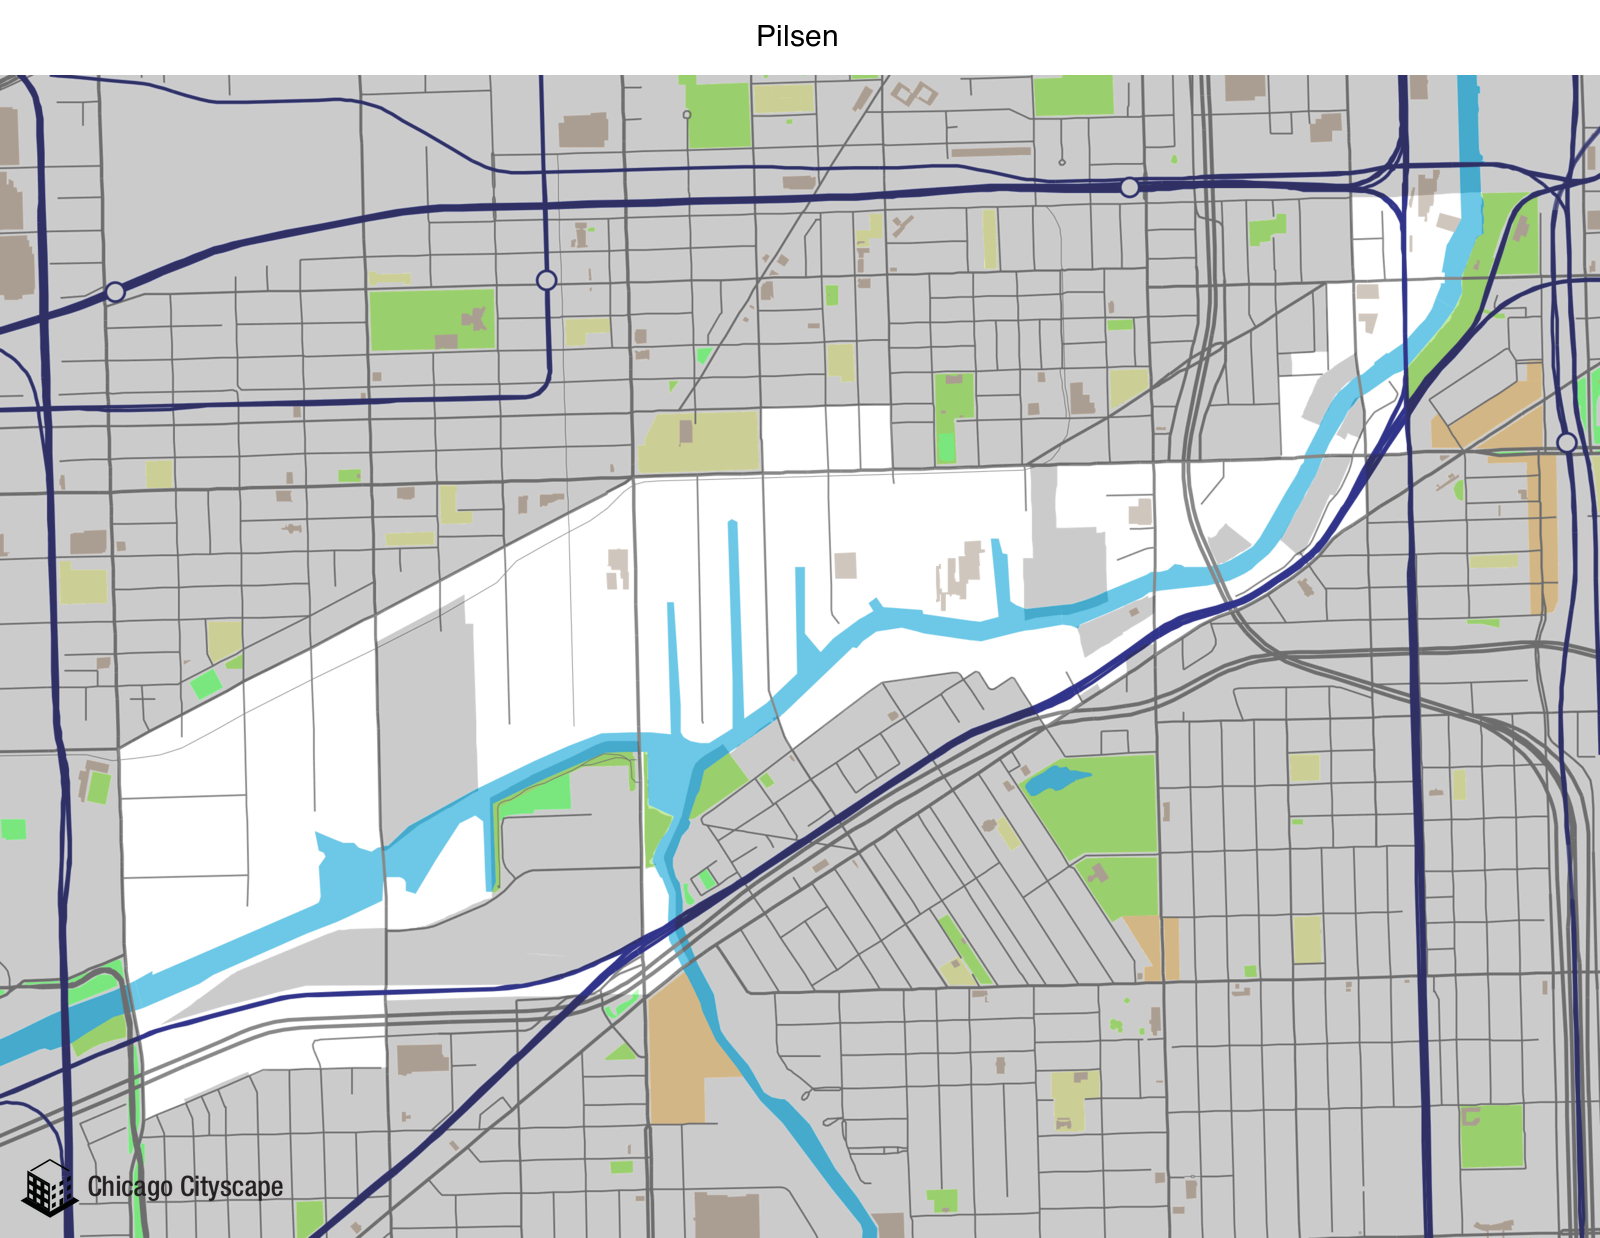 Map of building projects properties and businesses in Pilsen